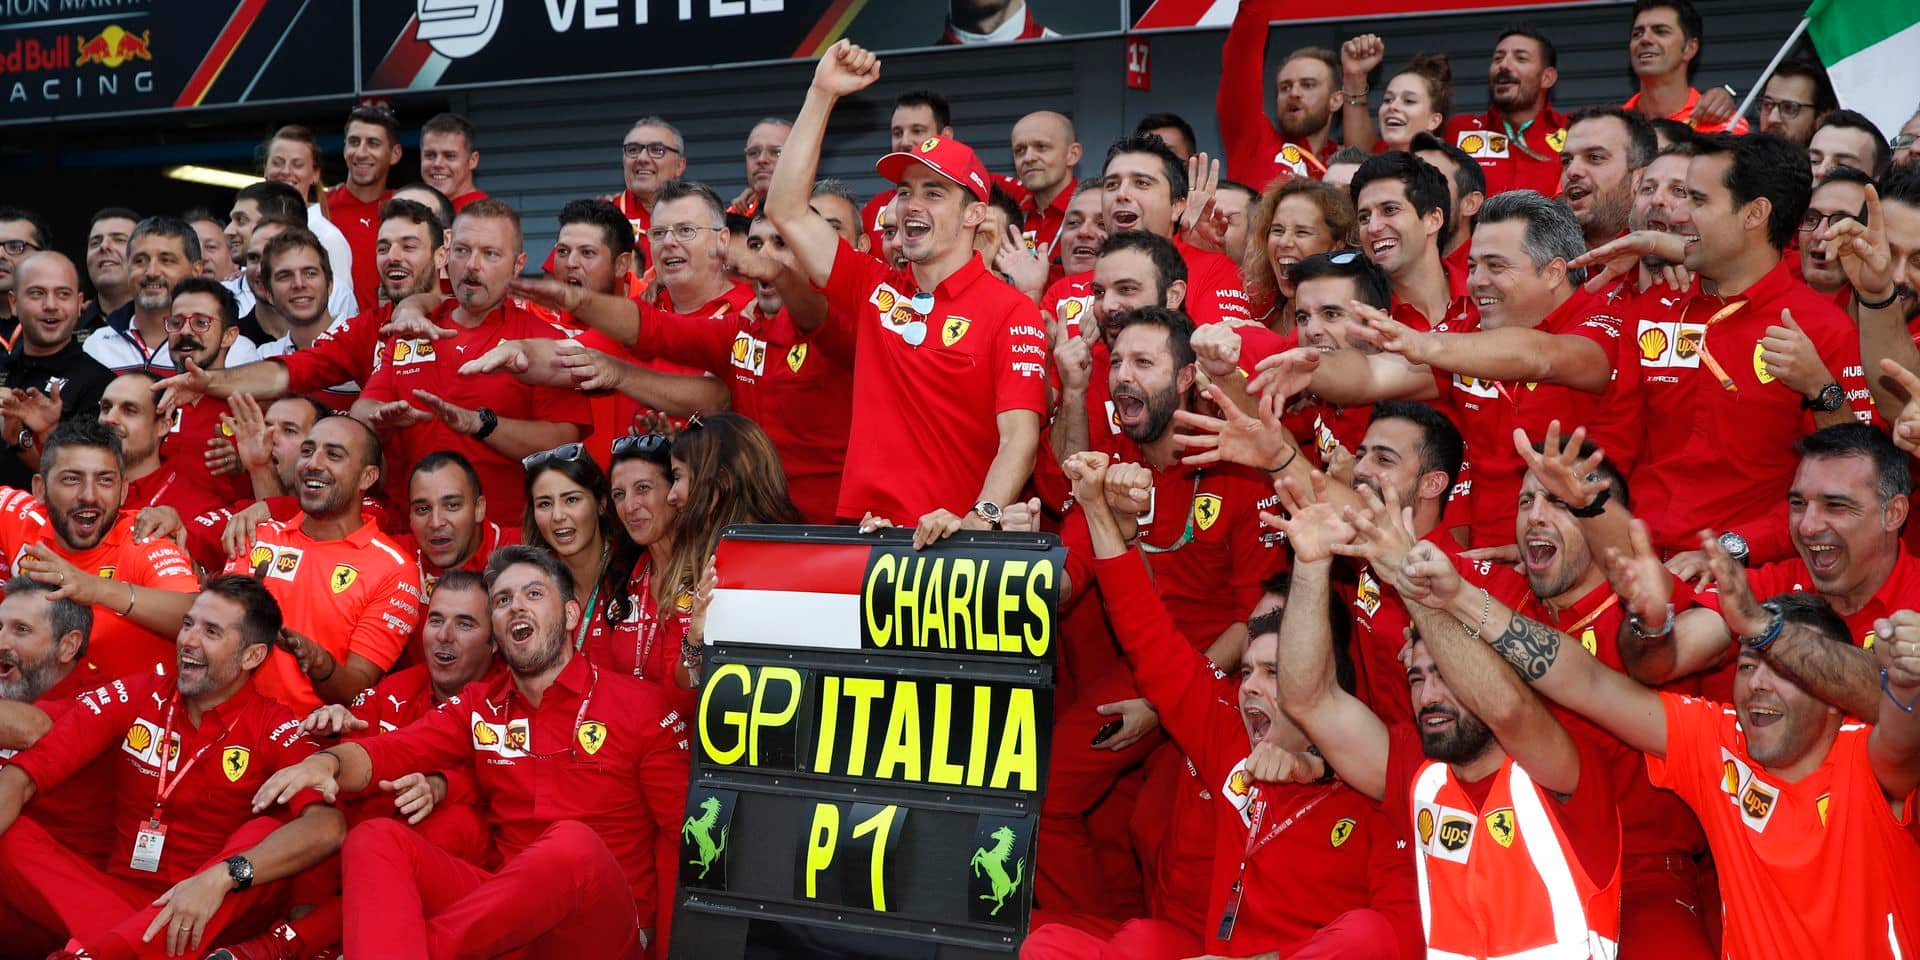 Ferrari driver Charles Leclerc of Monaco celebrates with Ferrari team staff at pits, after winning the Formula One Italy Grand Prix at the Monza racetrack, in Monza, Italy, Sunday, Sept.8, 2019. (AP Photo/Antonio Calanni)